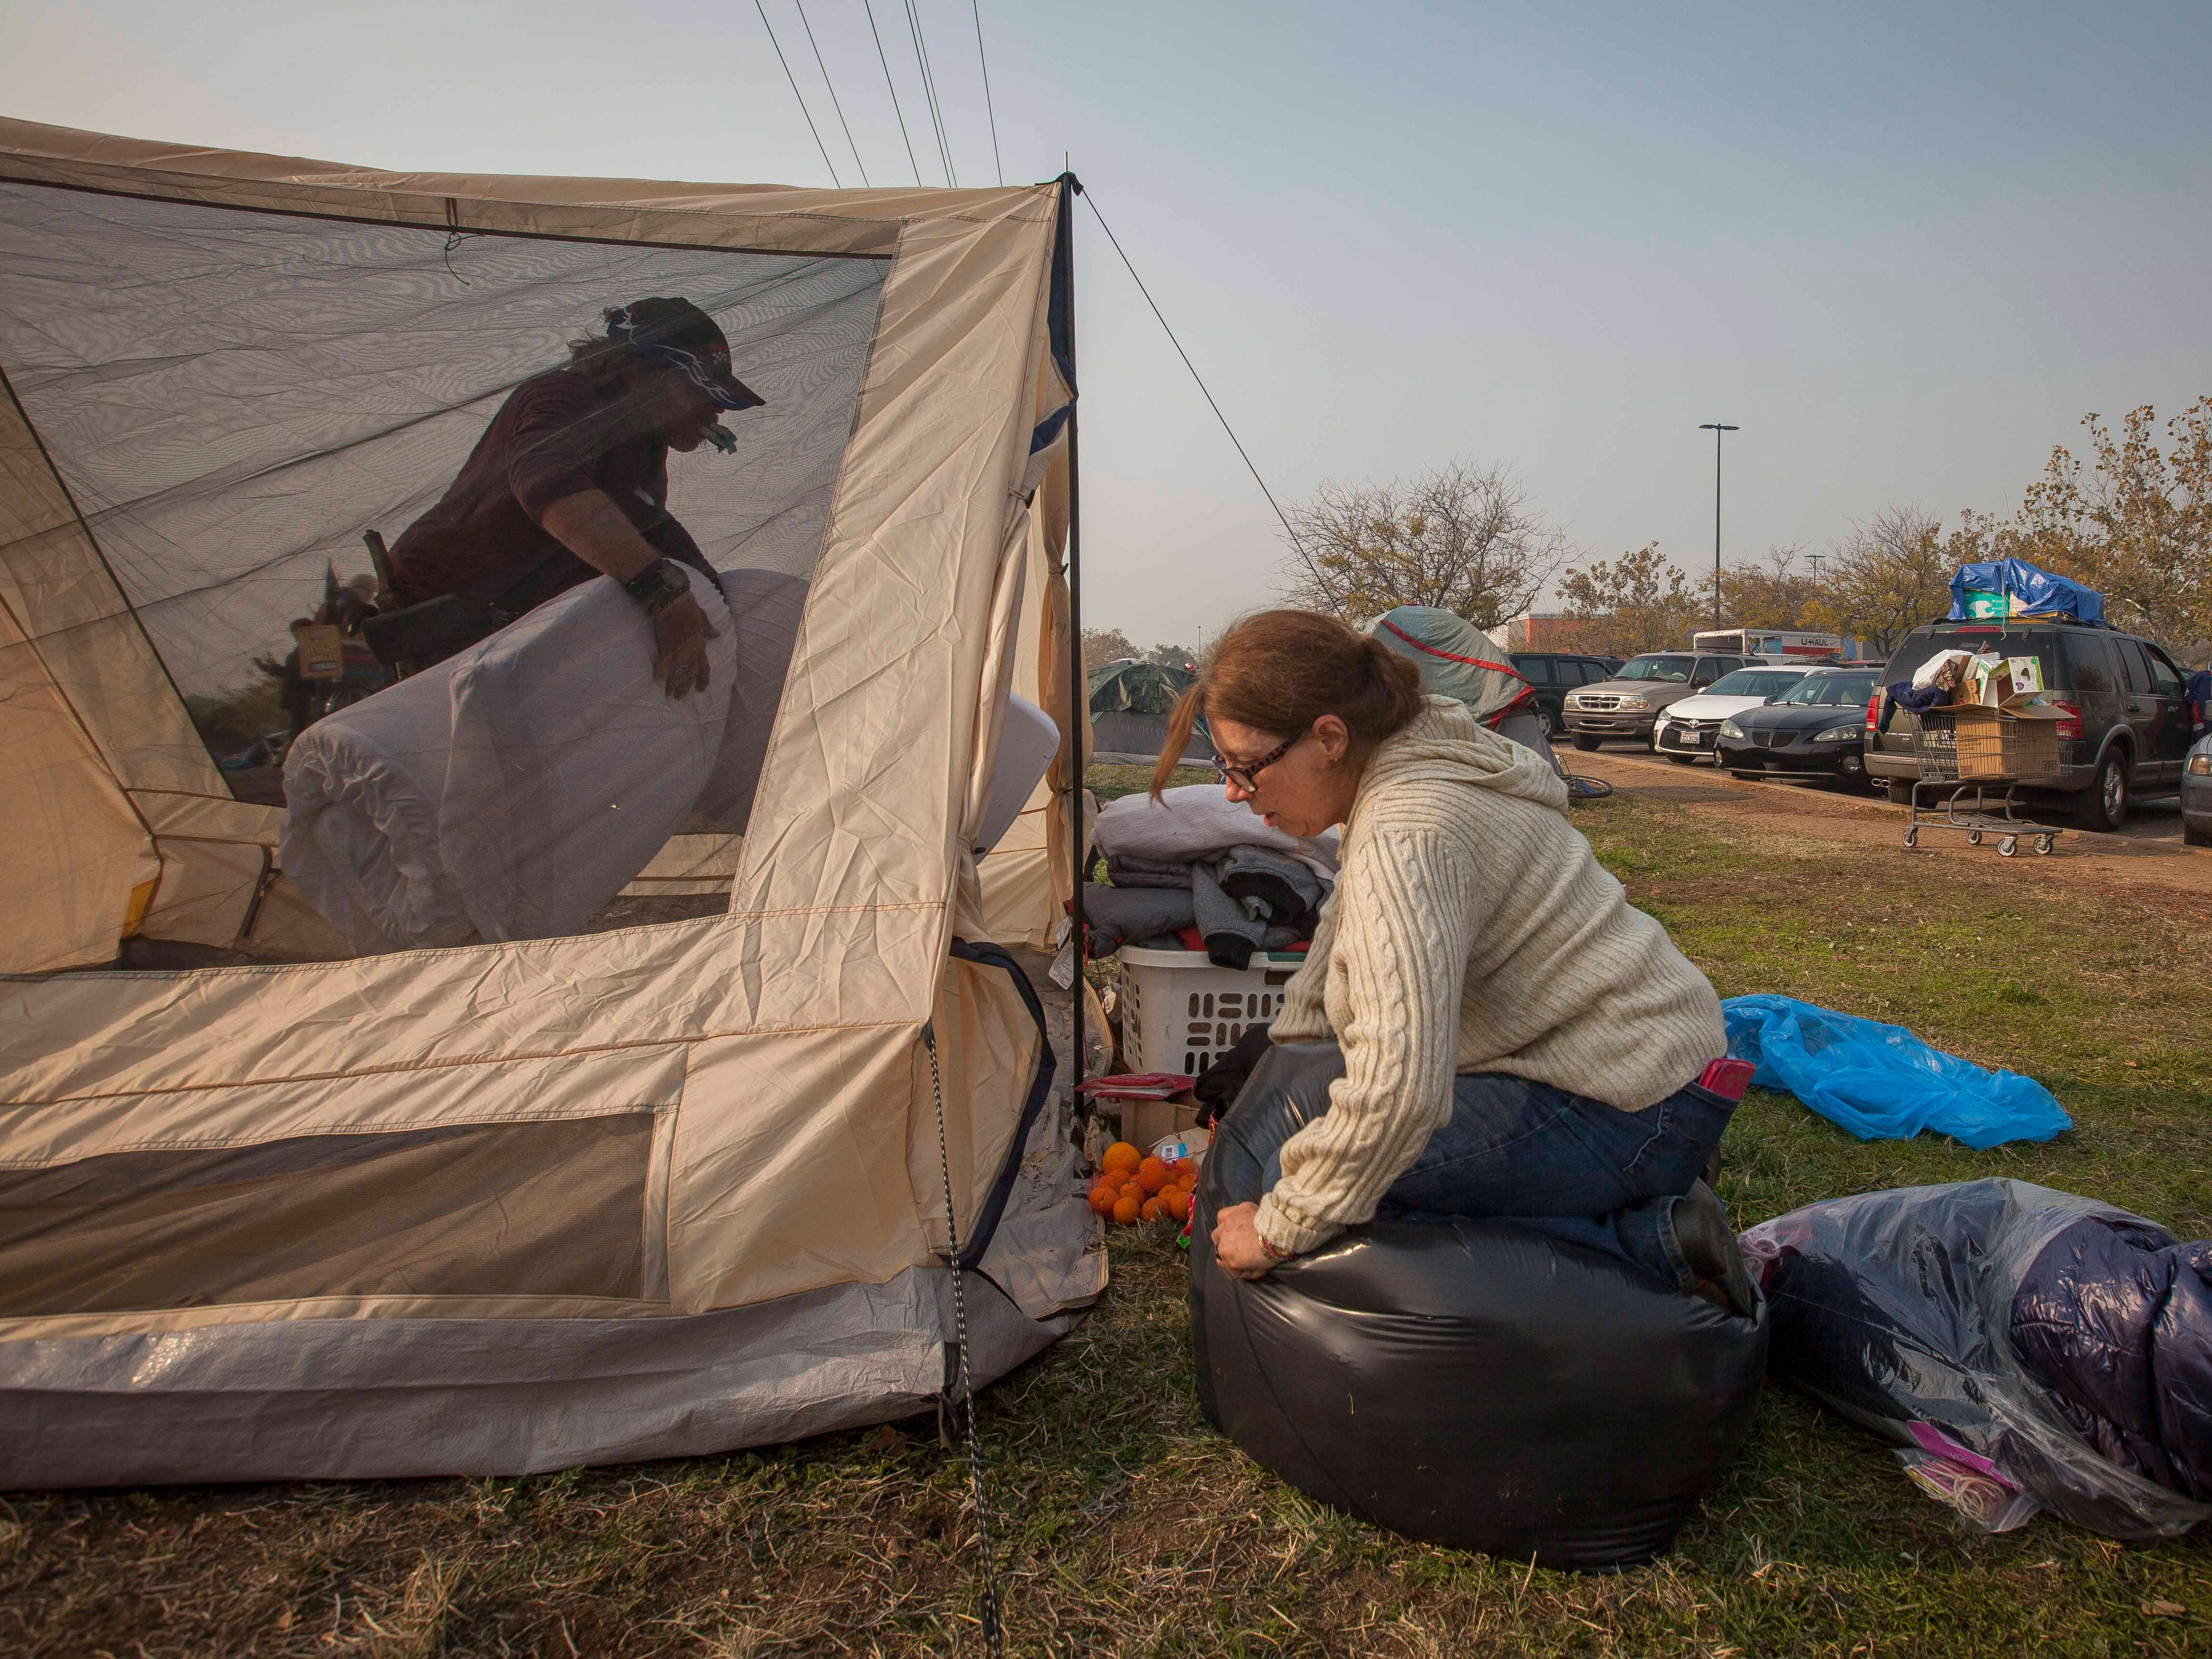 Cindy De Lano and her boyfriend John Richards work to pack up their belongings from the field next to a Walmart in Chico, Calif. on Nov. 18, 2018.